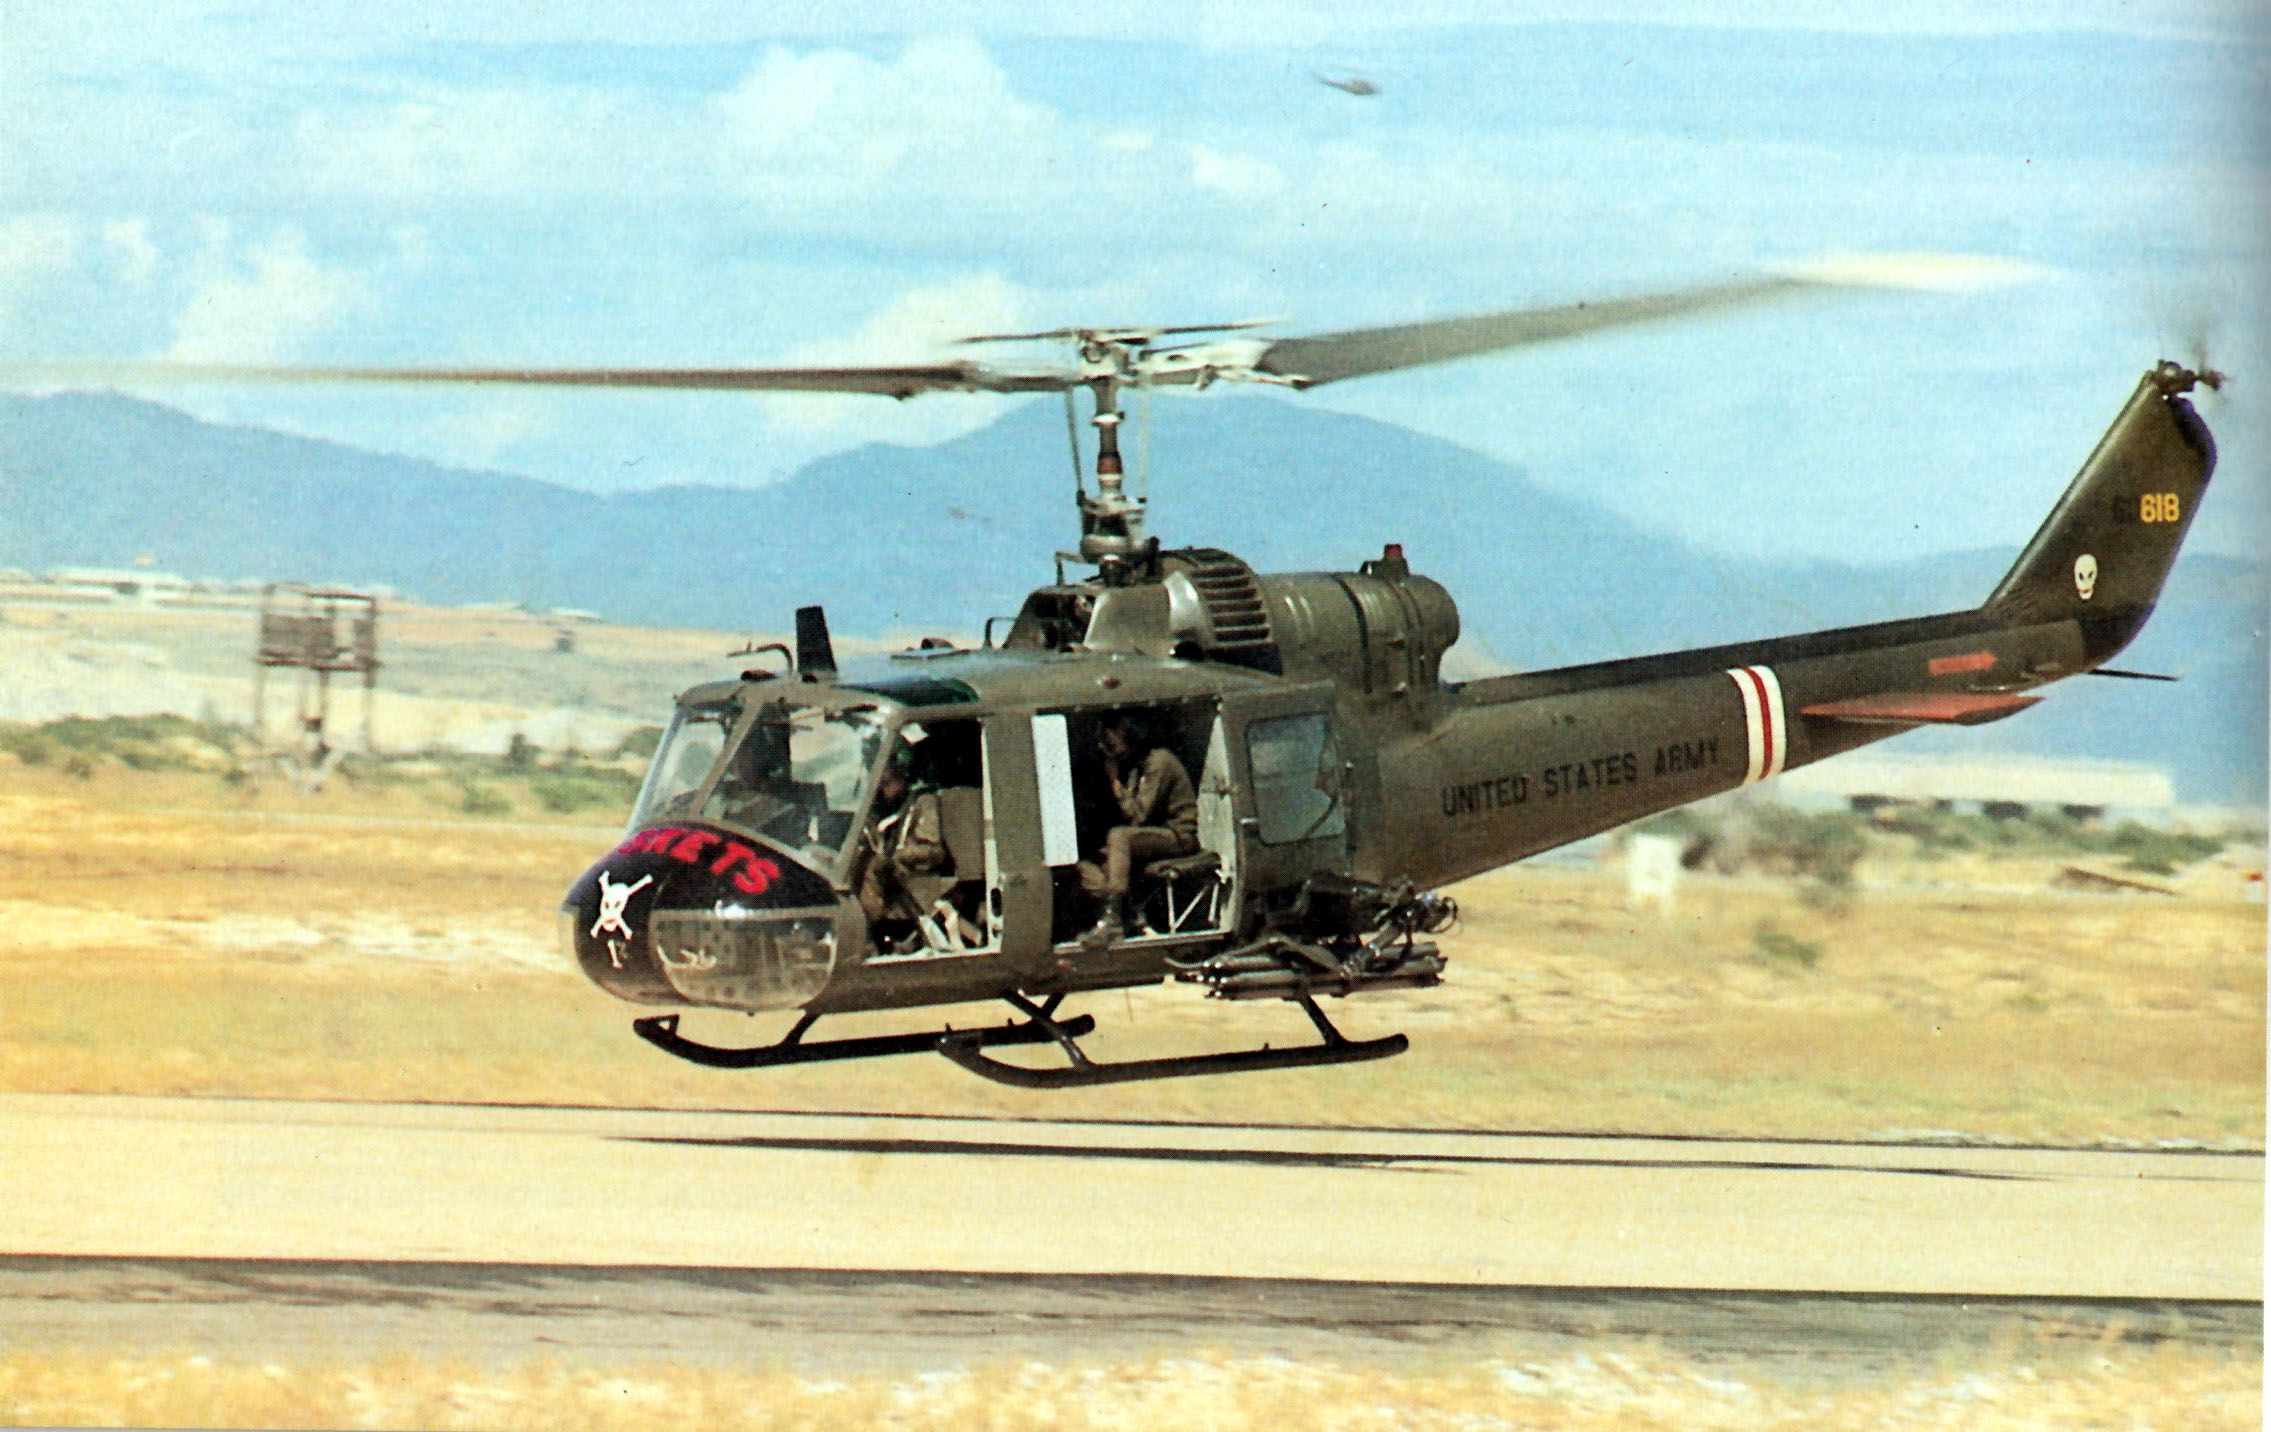 174th ahc vietnam - Uh 1c 66 618 176th Ahc Chu Lai 1971 Photo Cpt Mike Campbell